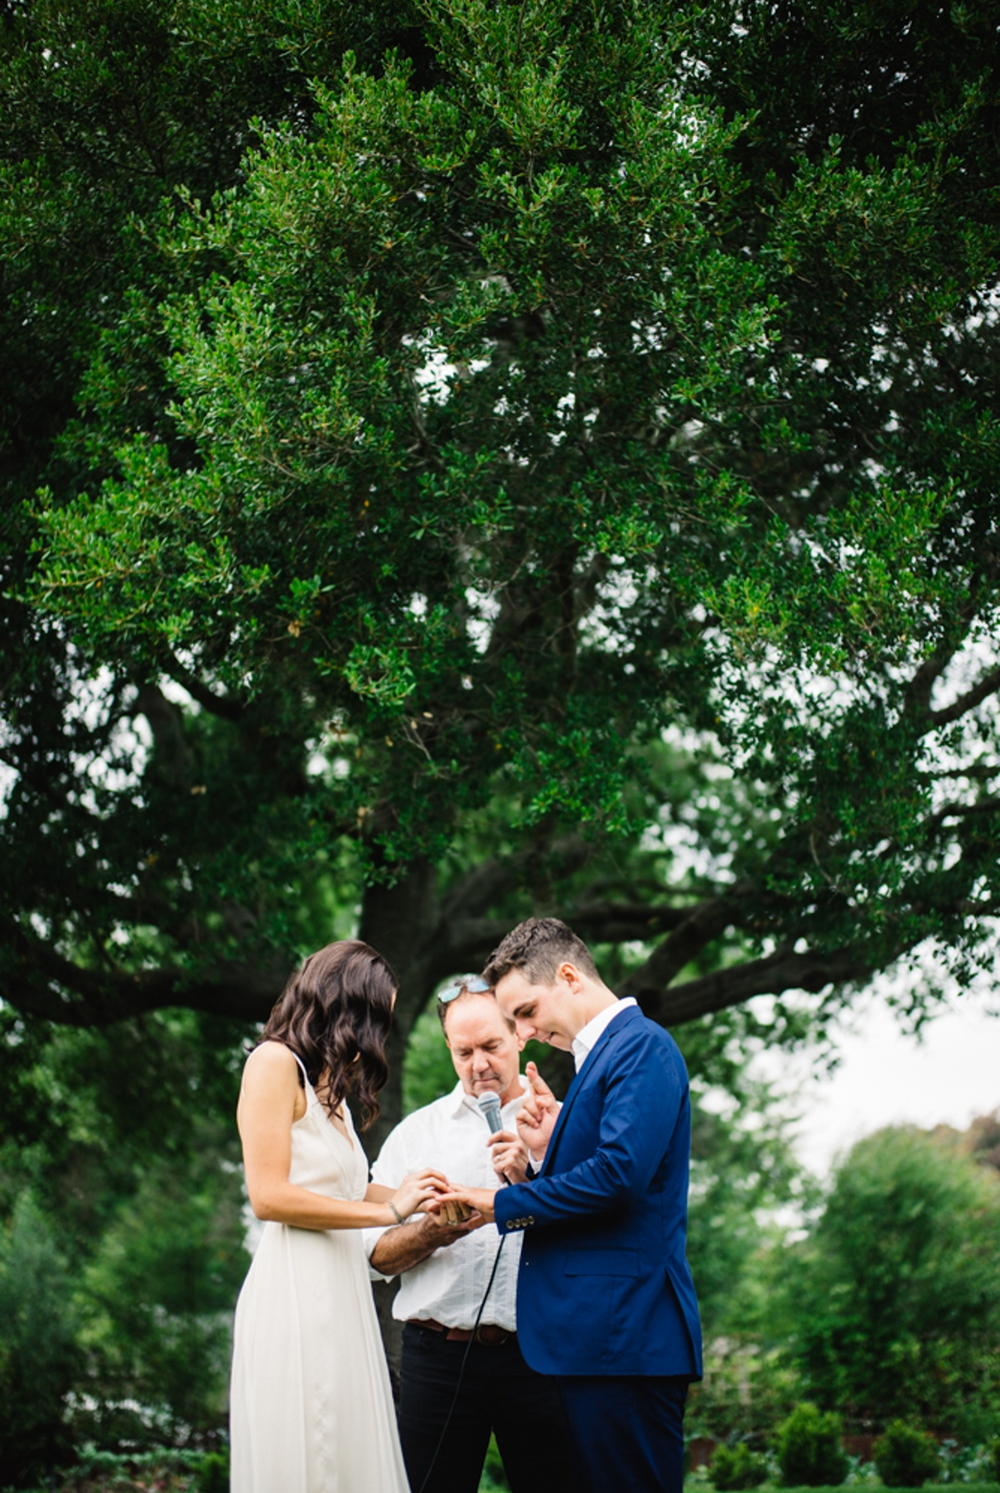 Neutral Tone Barlow Outdoor Wedding Sebastopol California 24